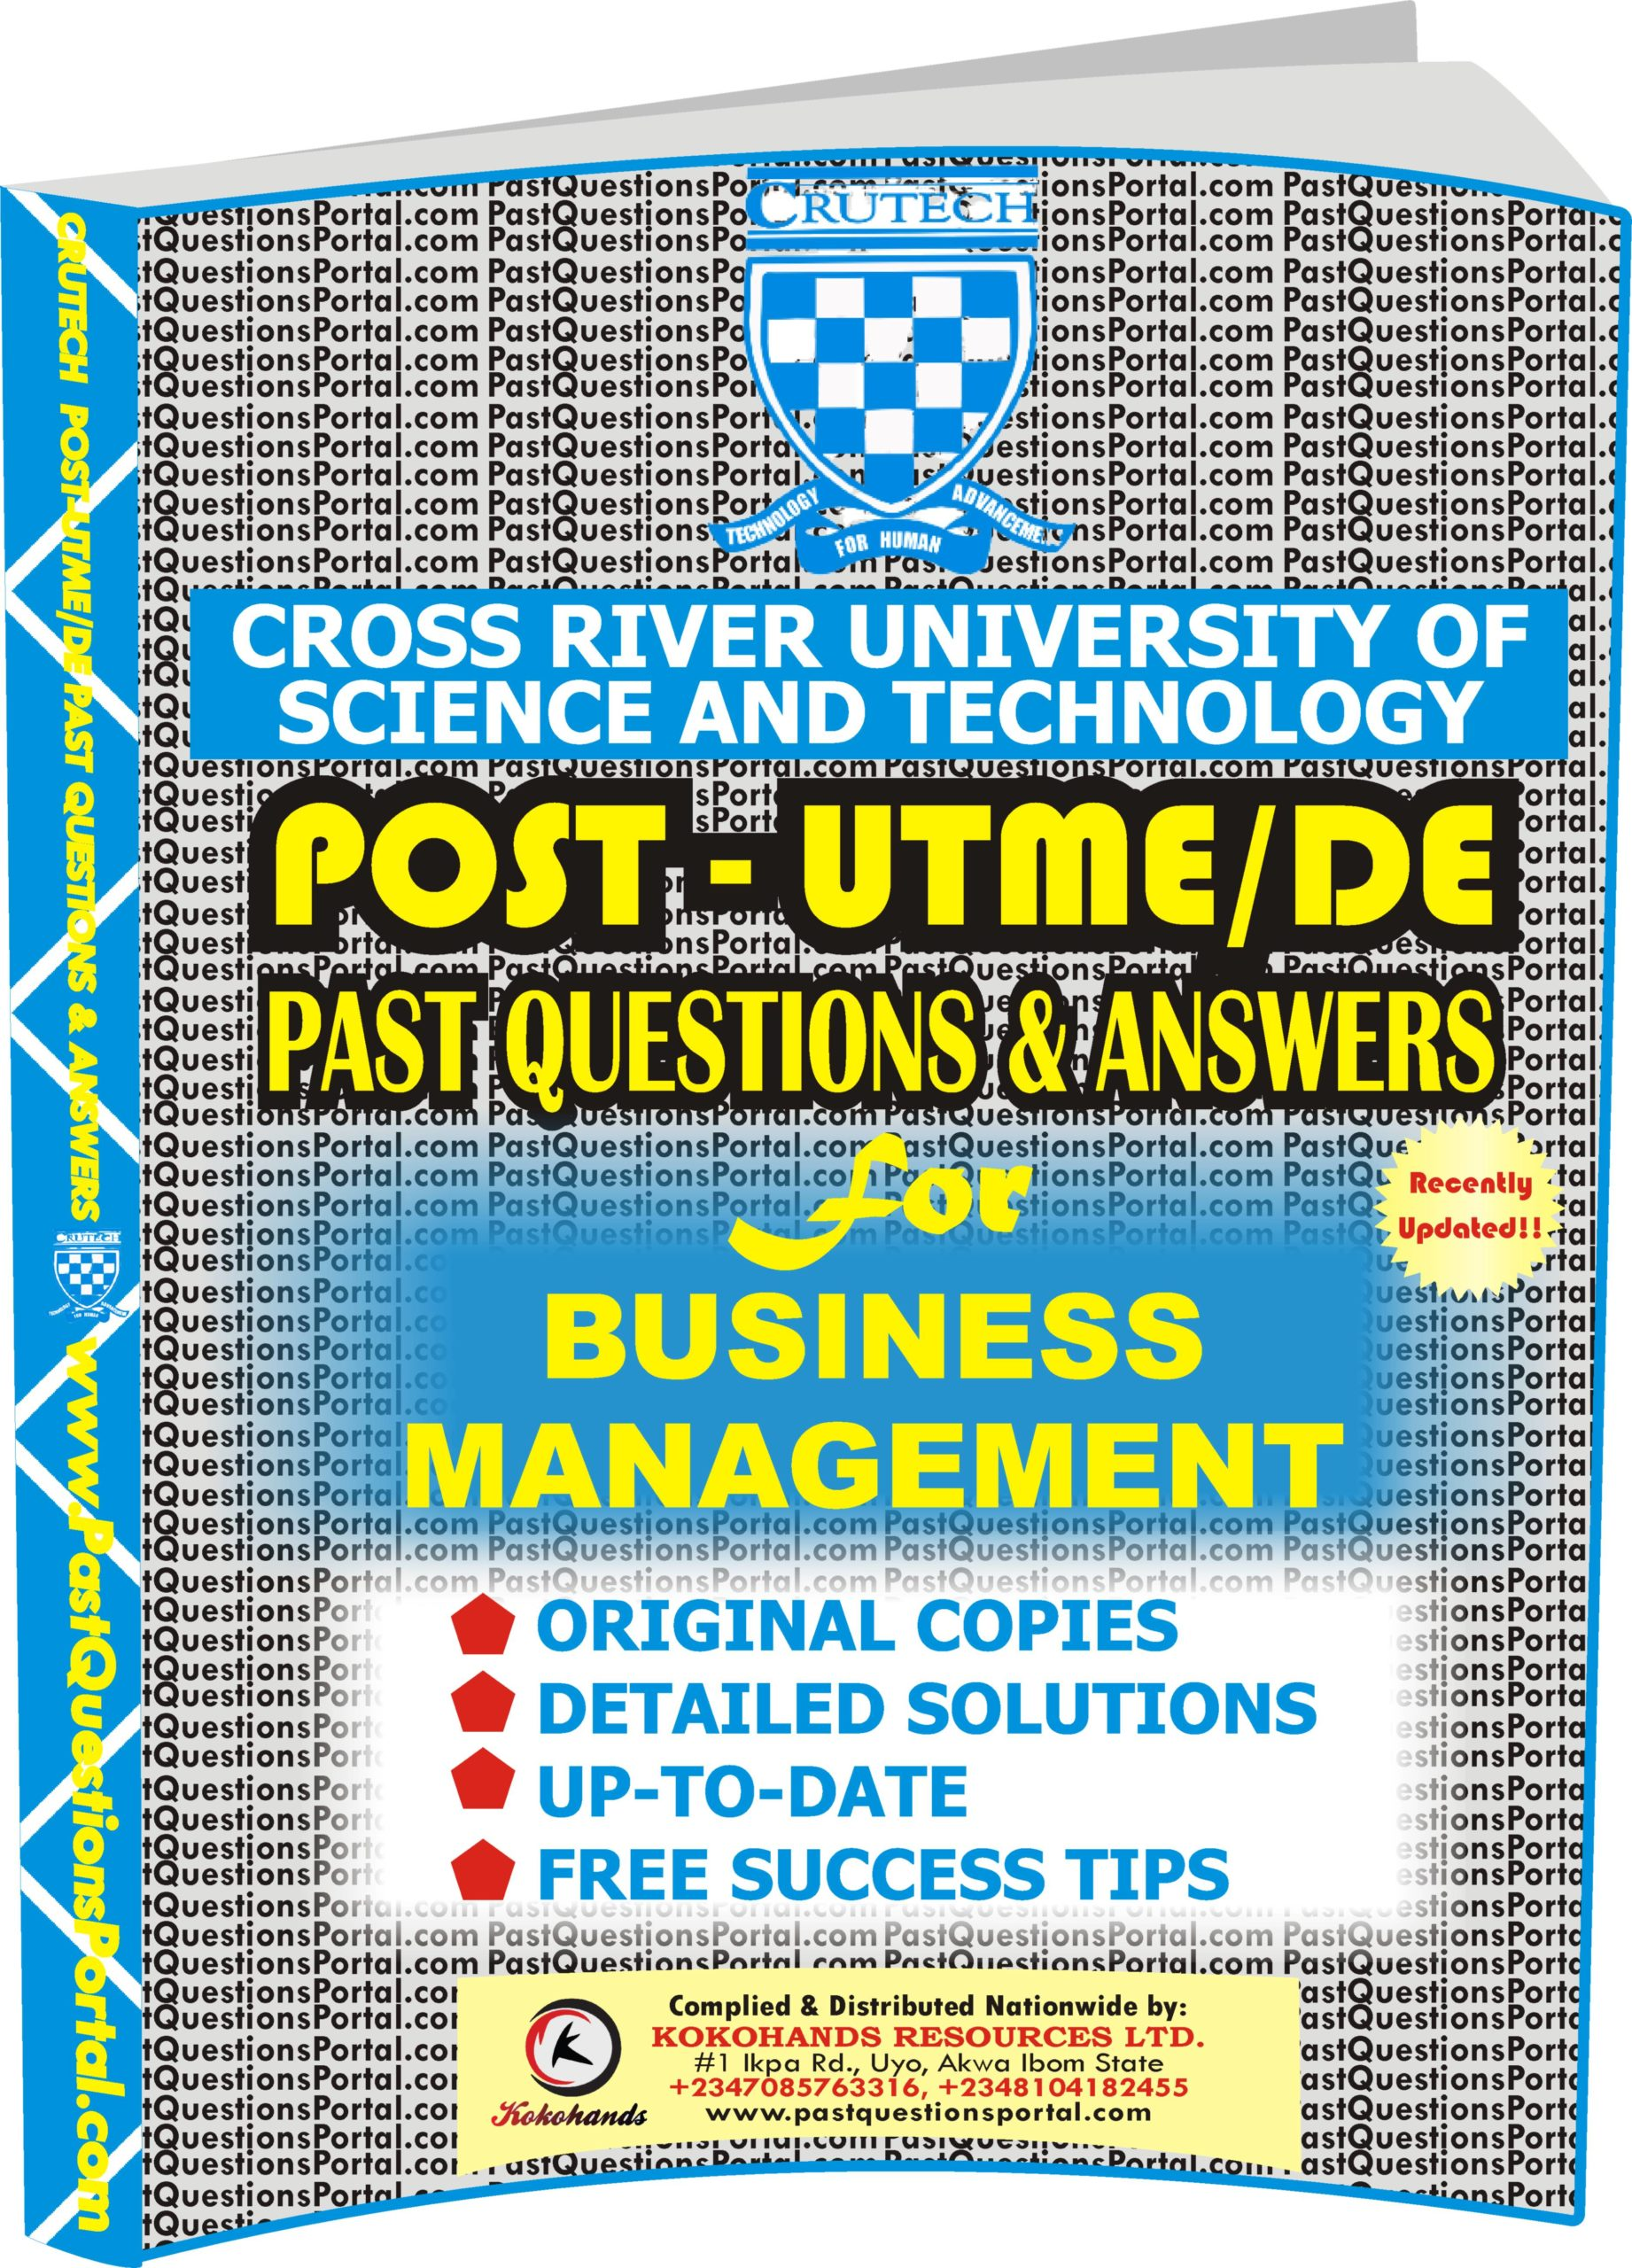 CRUTECH Post UTME Past Questions for BUSINESS MANAGEMENT